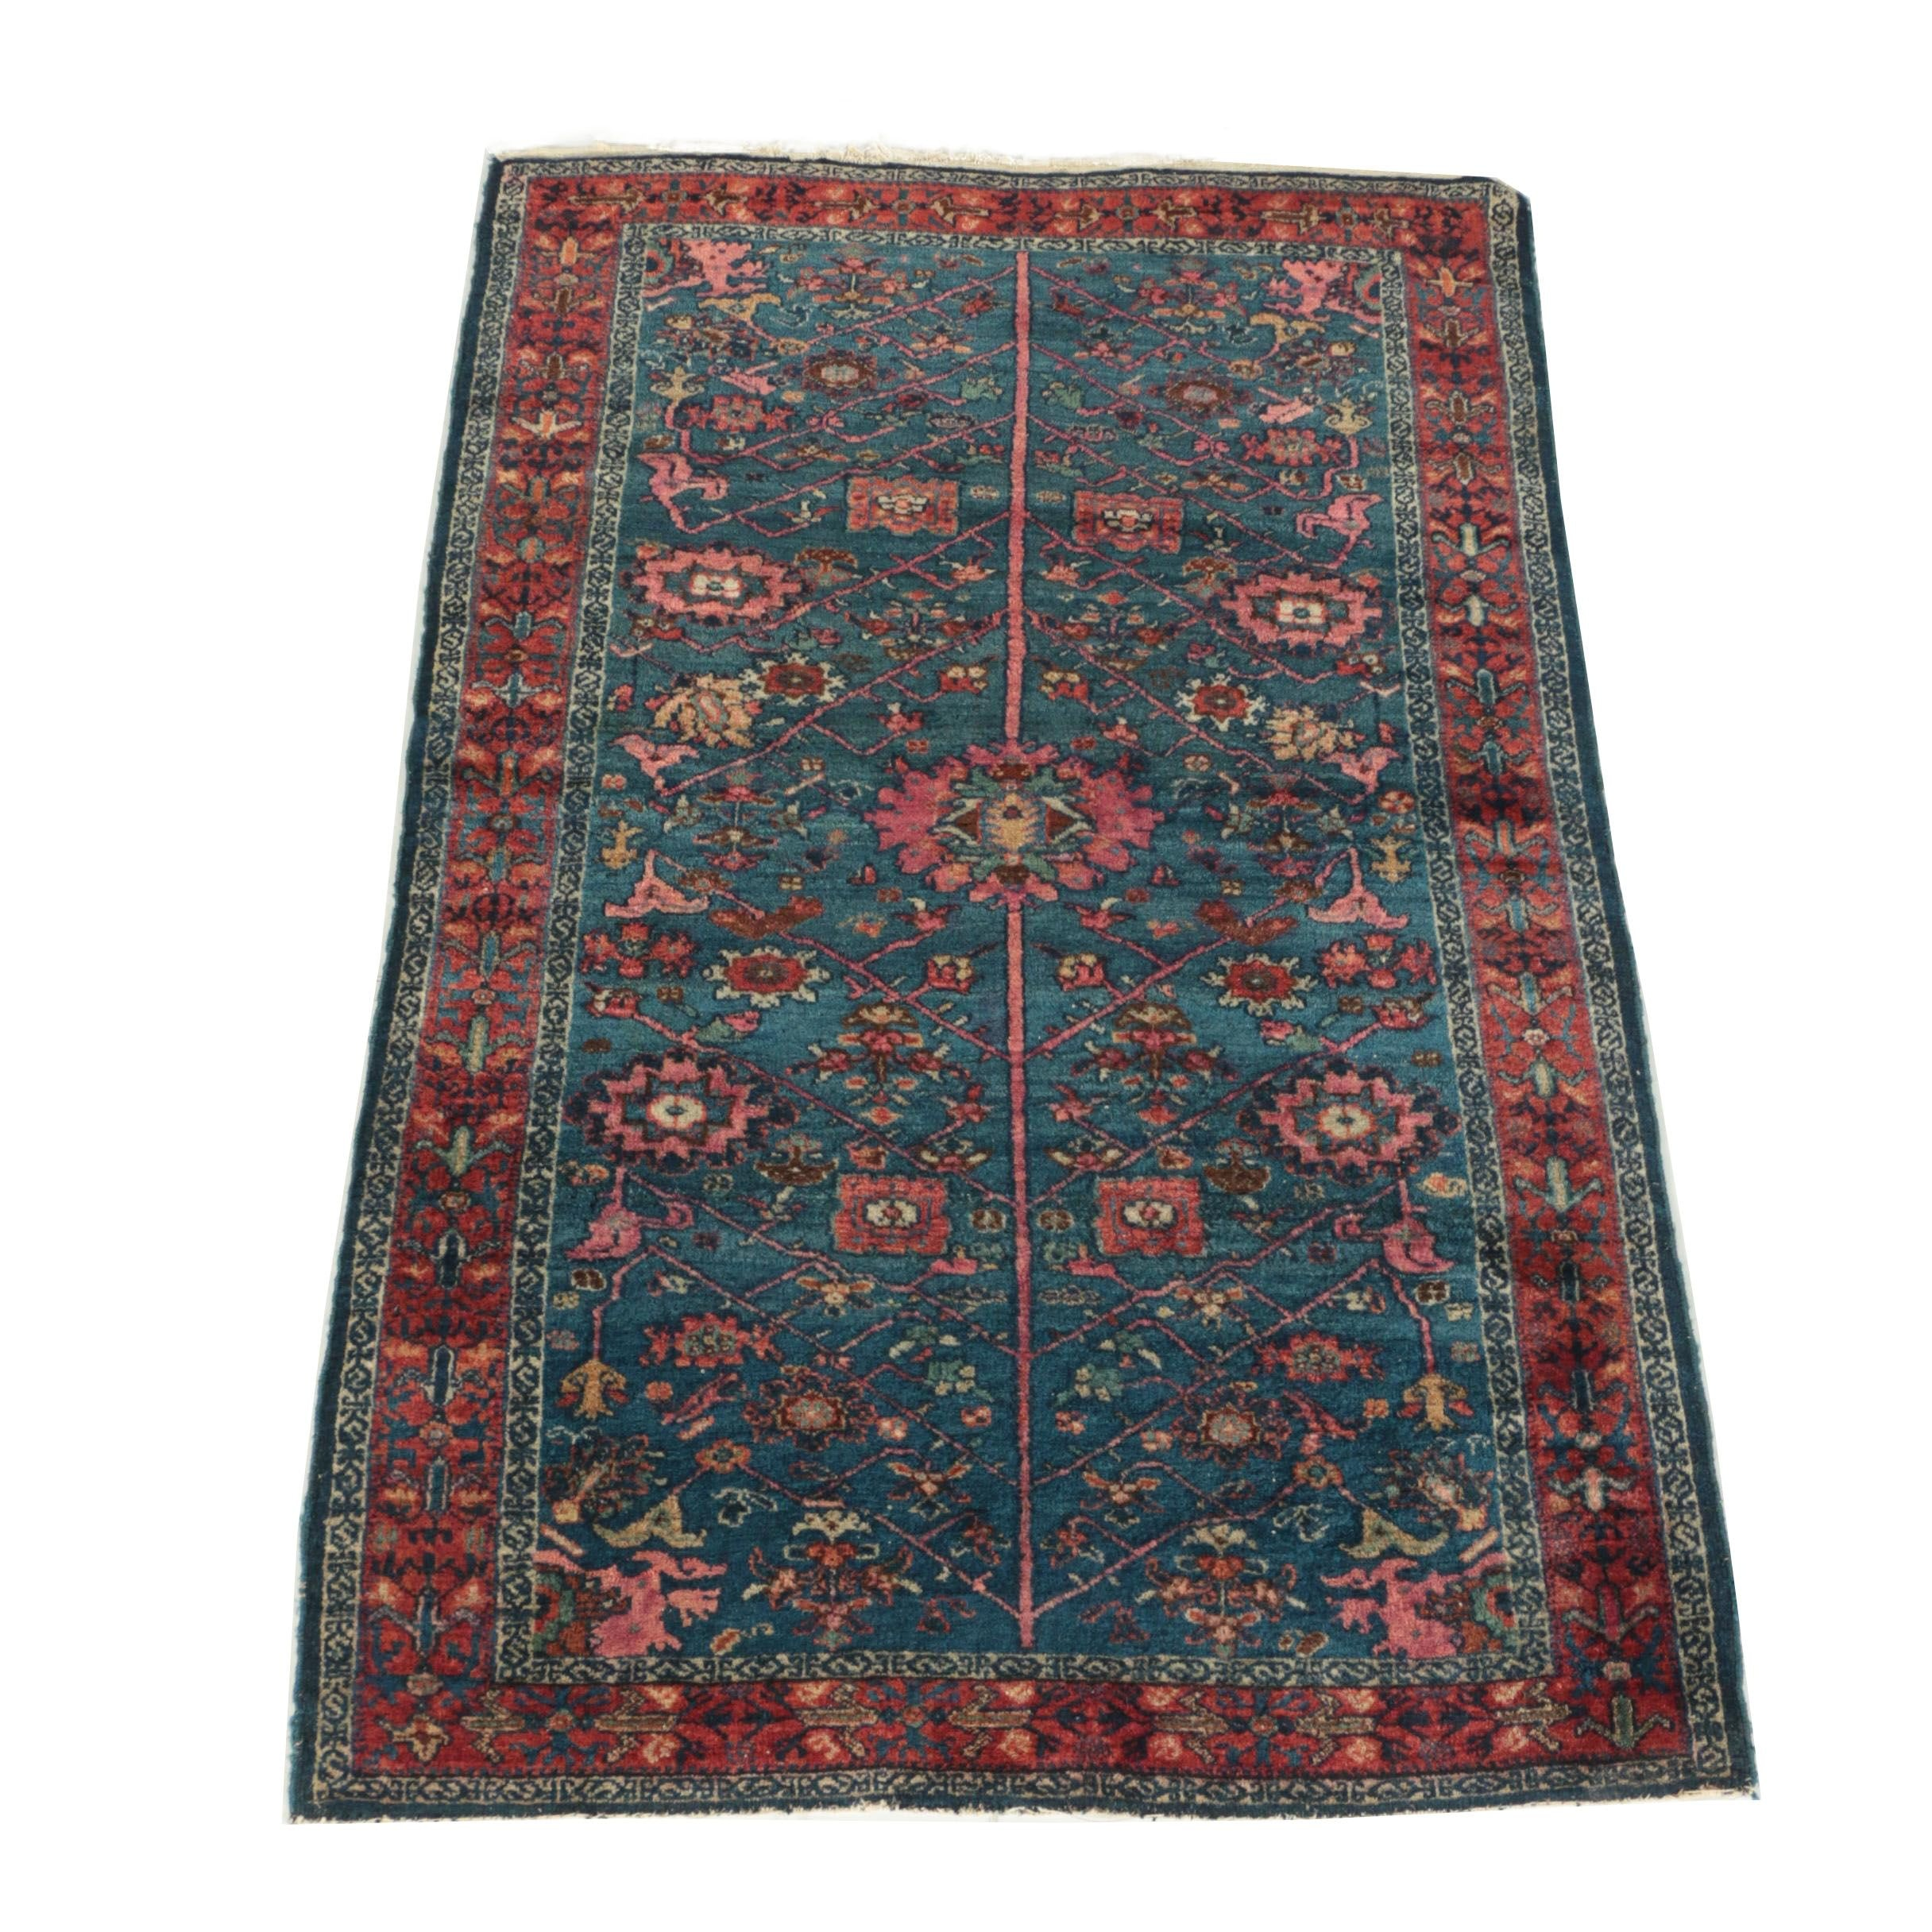 Semi-Antique Hand-Knotted Kurdish Wool Accent Rug